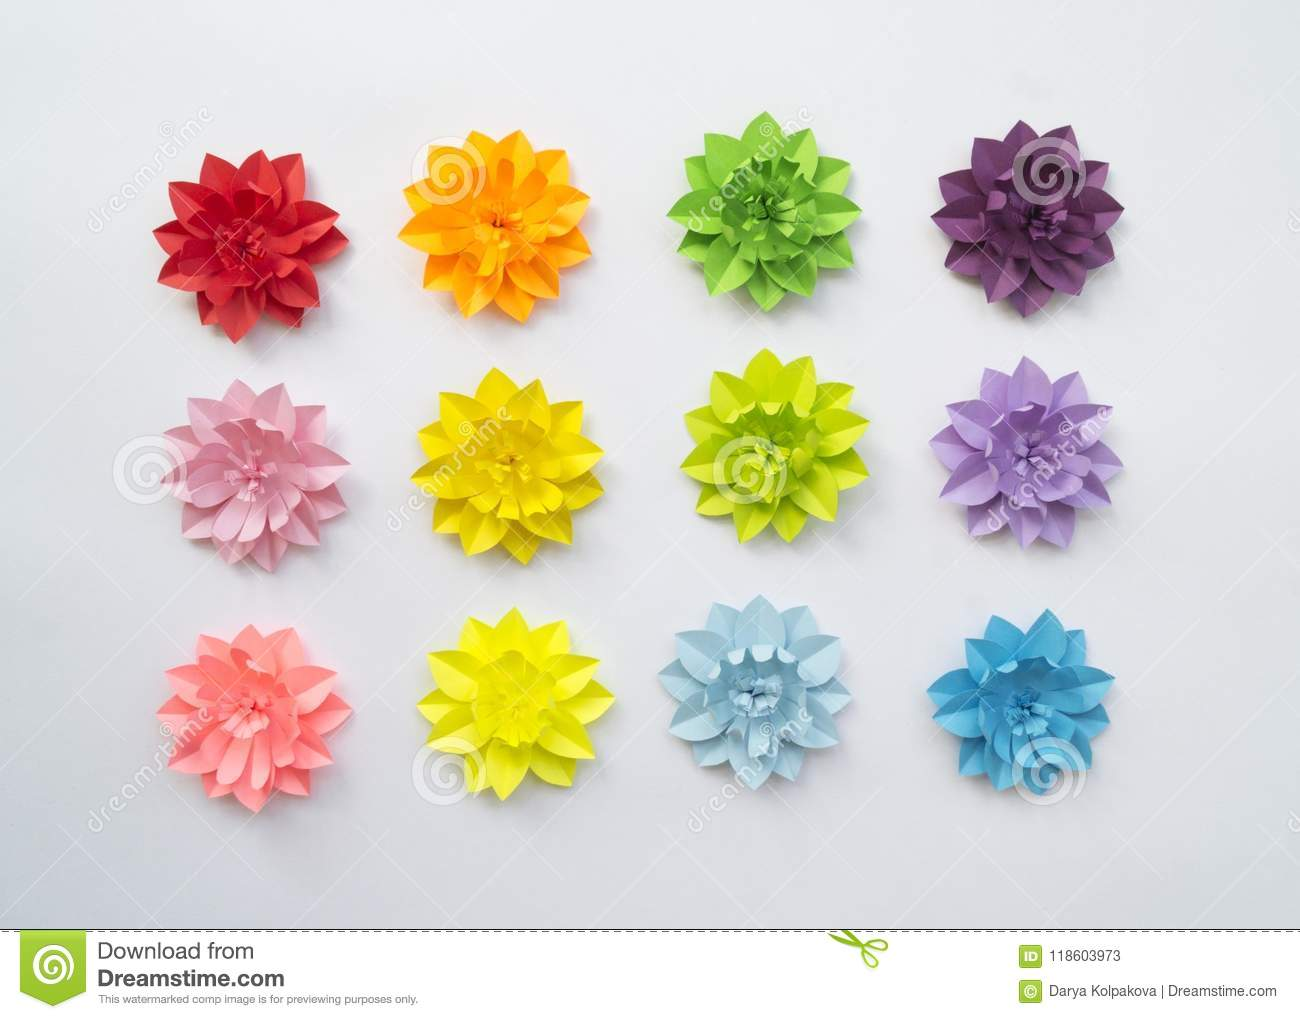 Paper craft flower decoration concept stock image image of paper craft flower decoration concept flowers and leaves made of paper tropics white background mightylinksfo